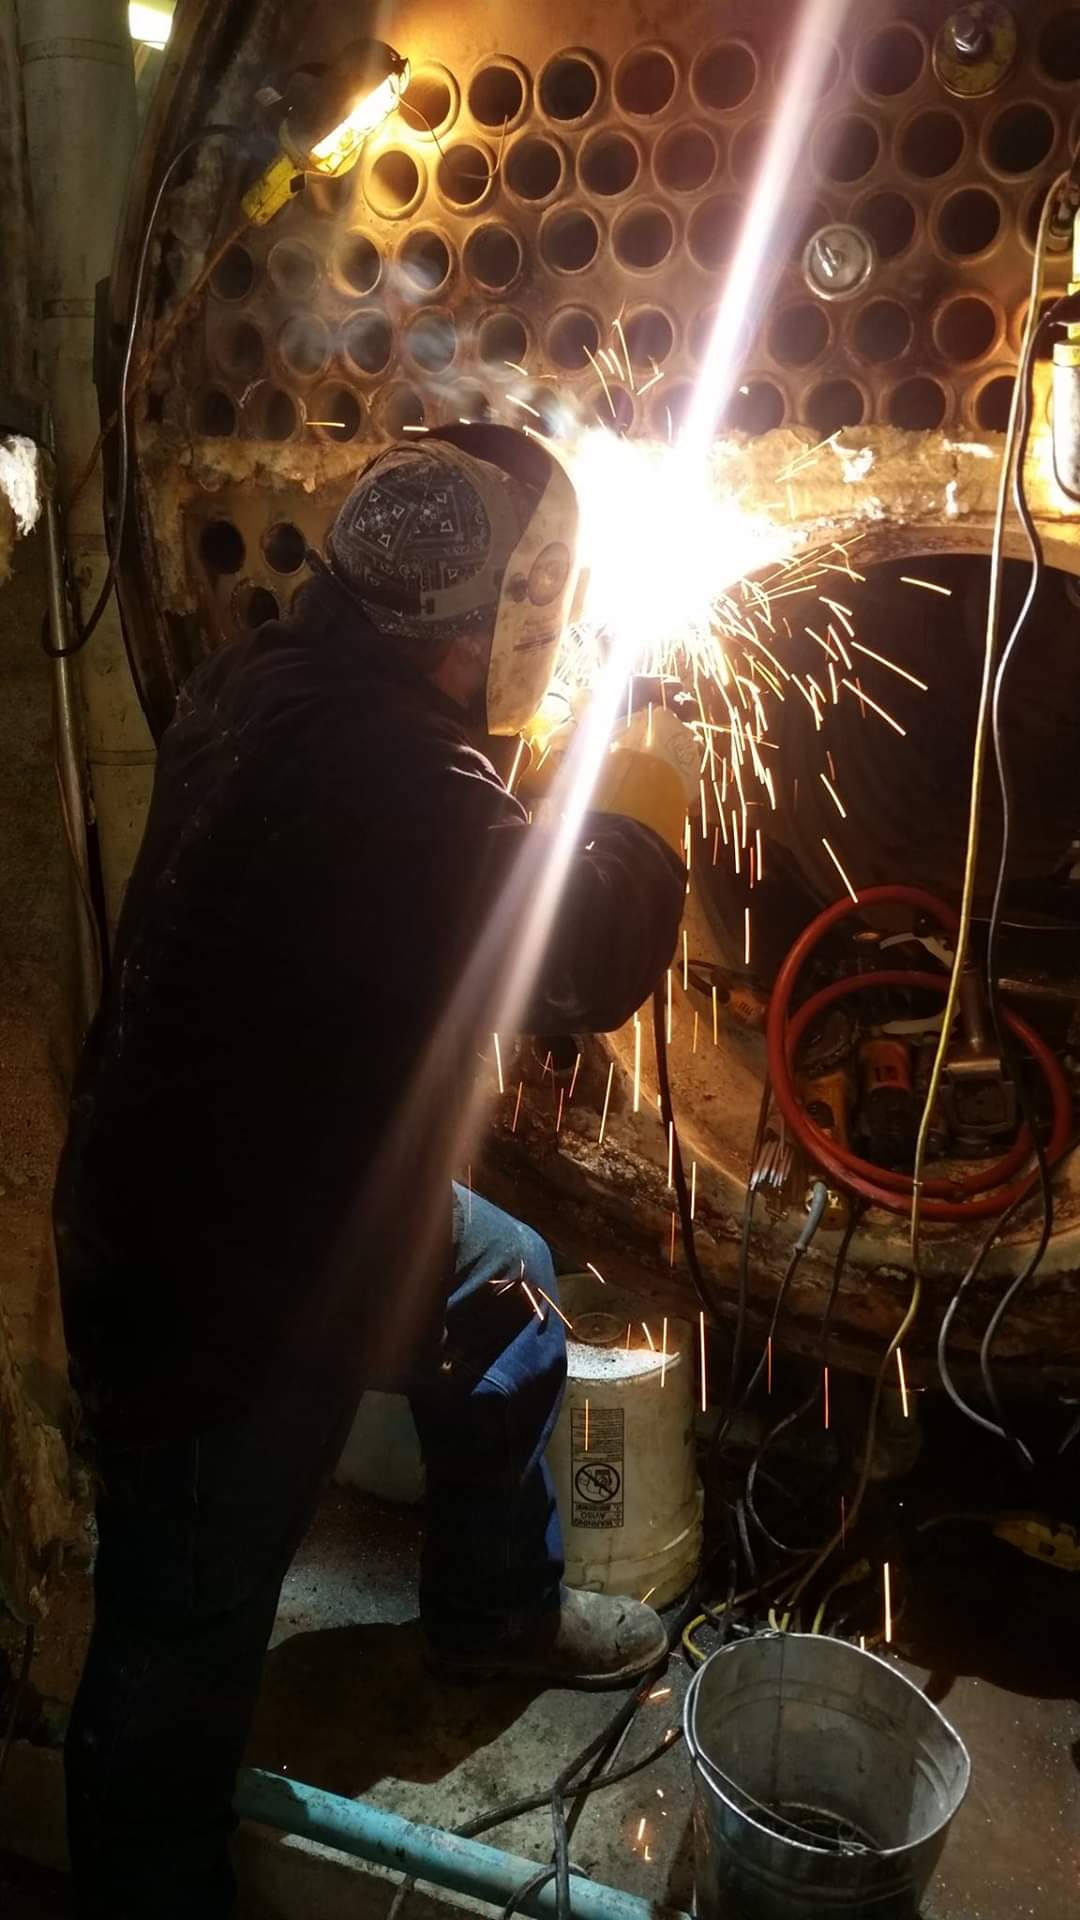 Repair being performed during a boiler lay-up